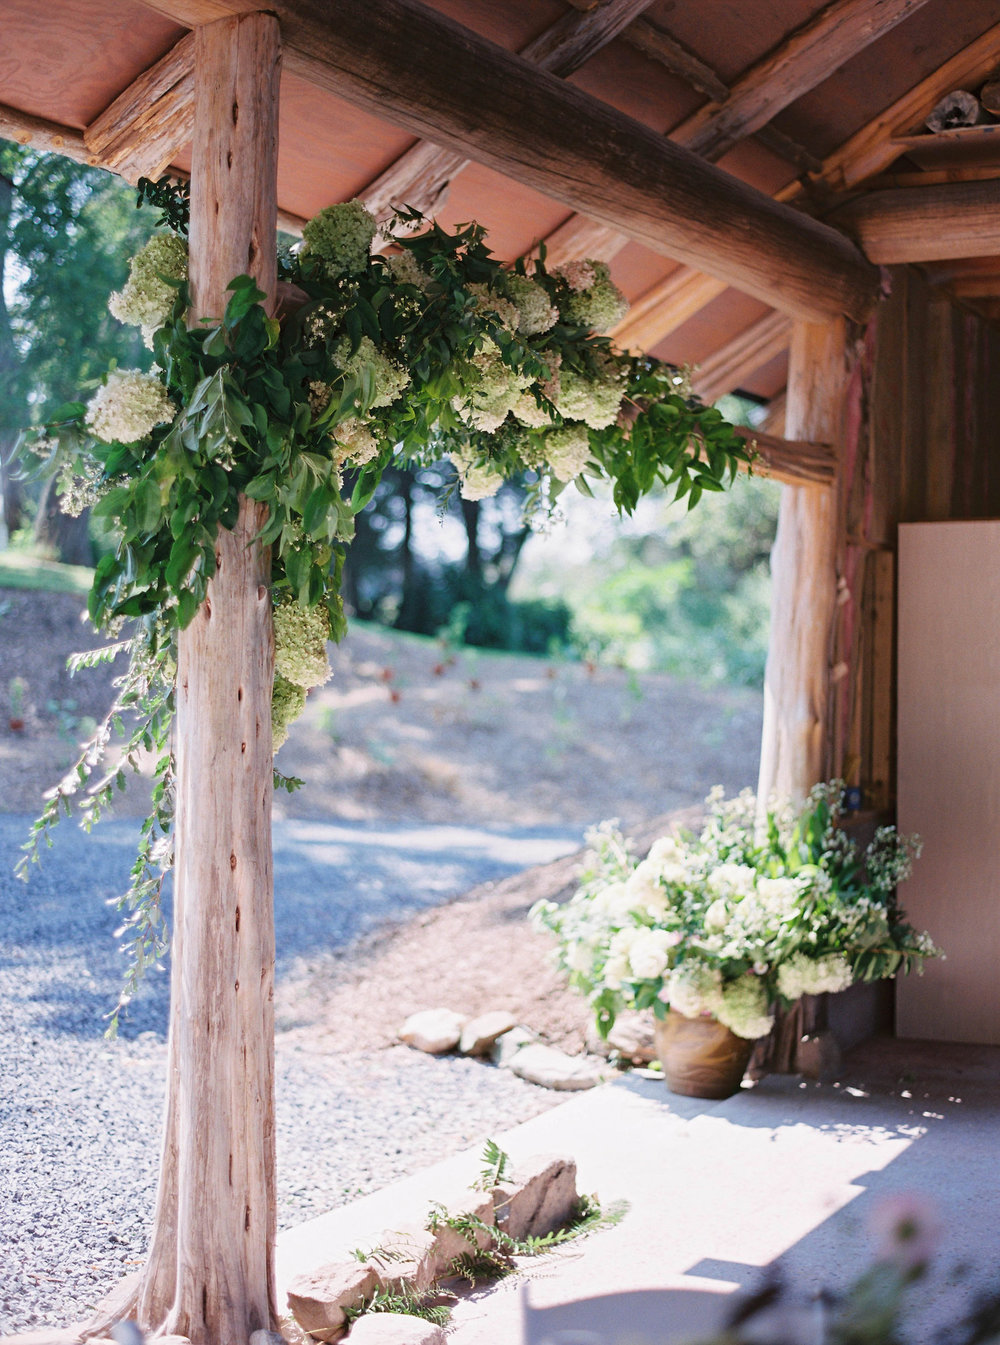 amelia_johnson_photography_hydrangeas.jpg